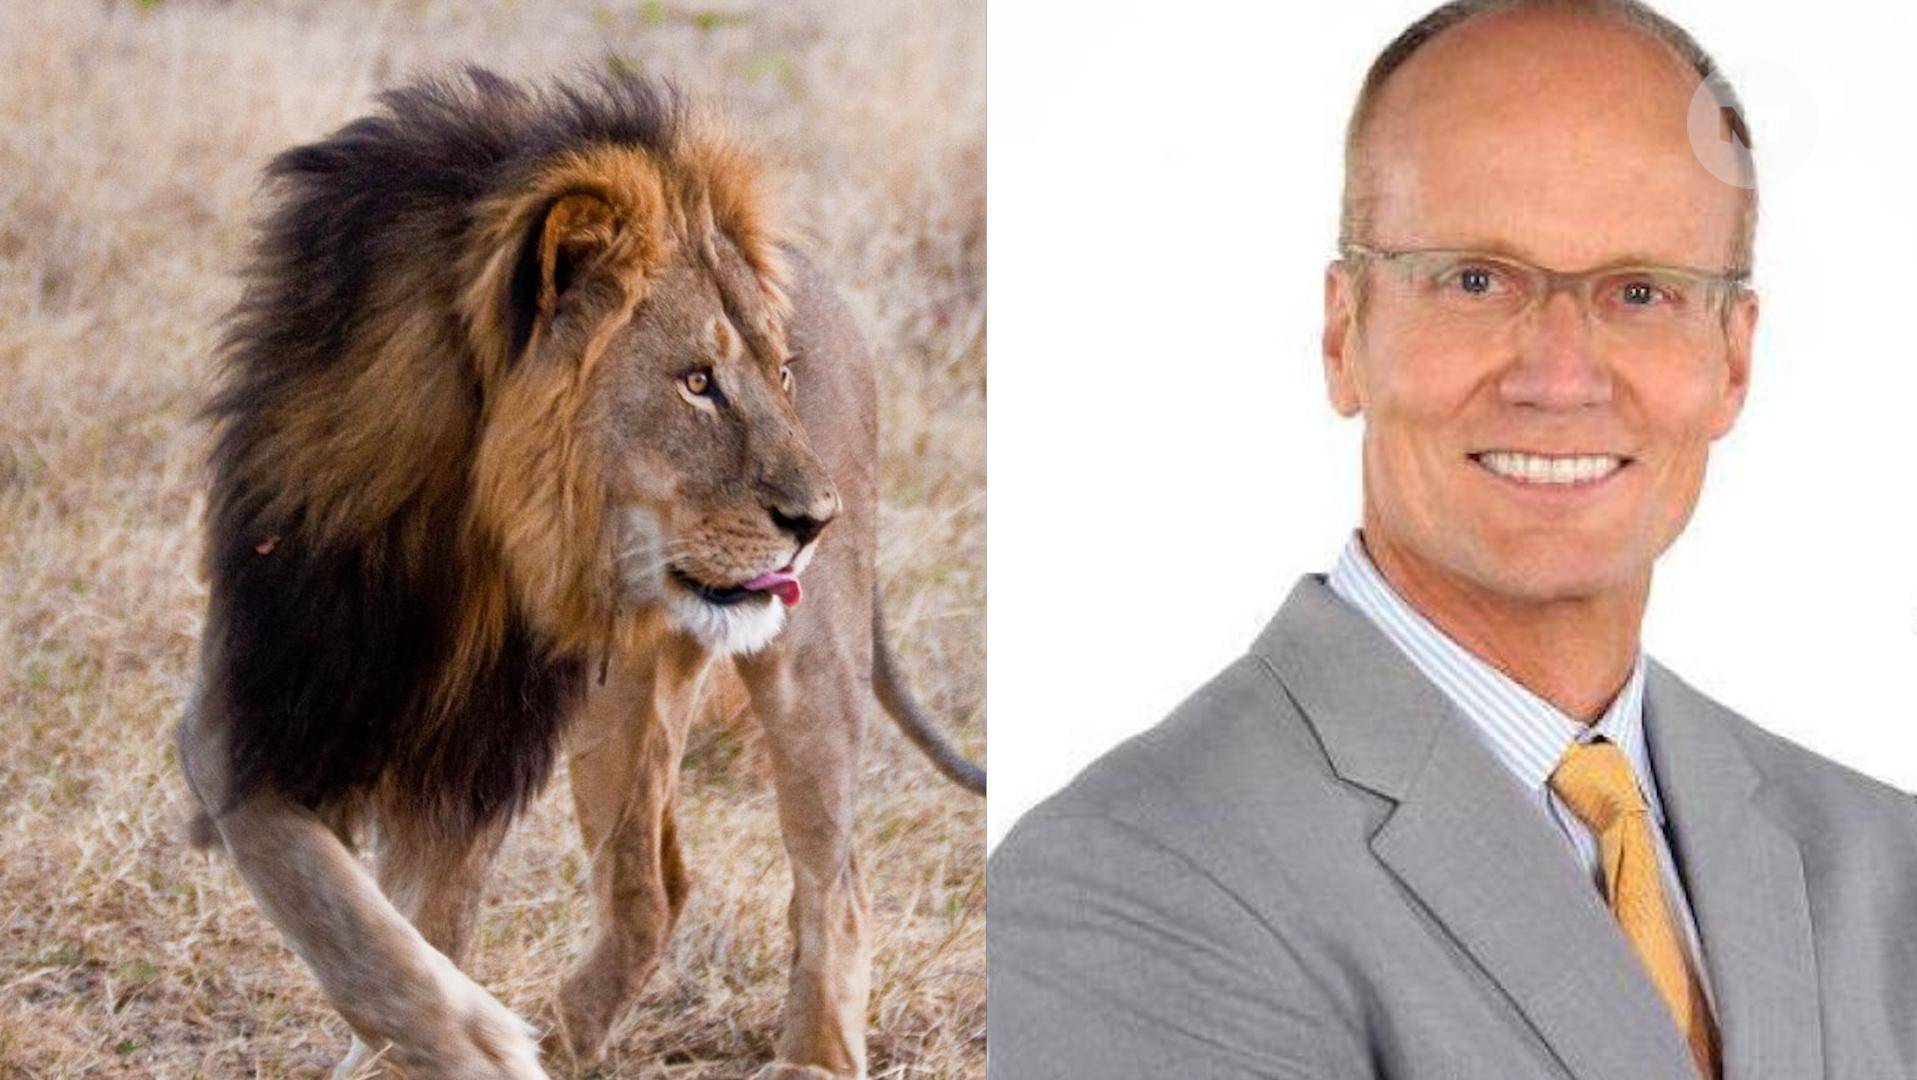 Dentist Walter James Palmer sends patients apology letter after killing Zimbabwe lion Cecil